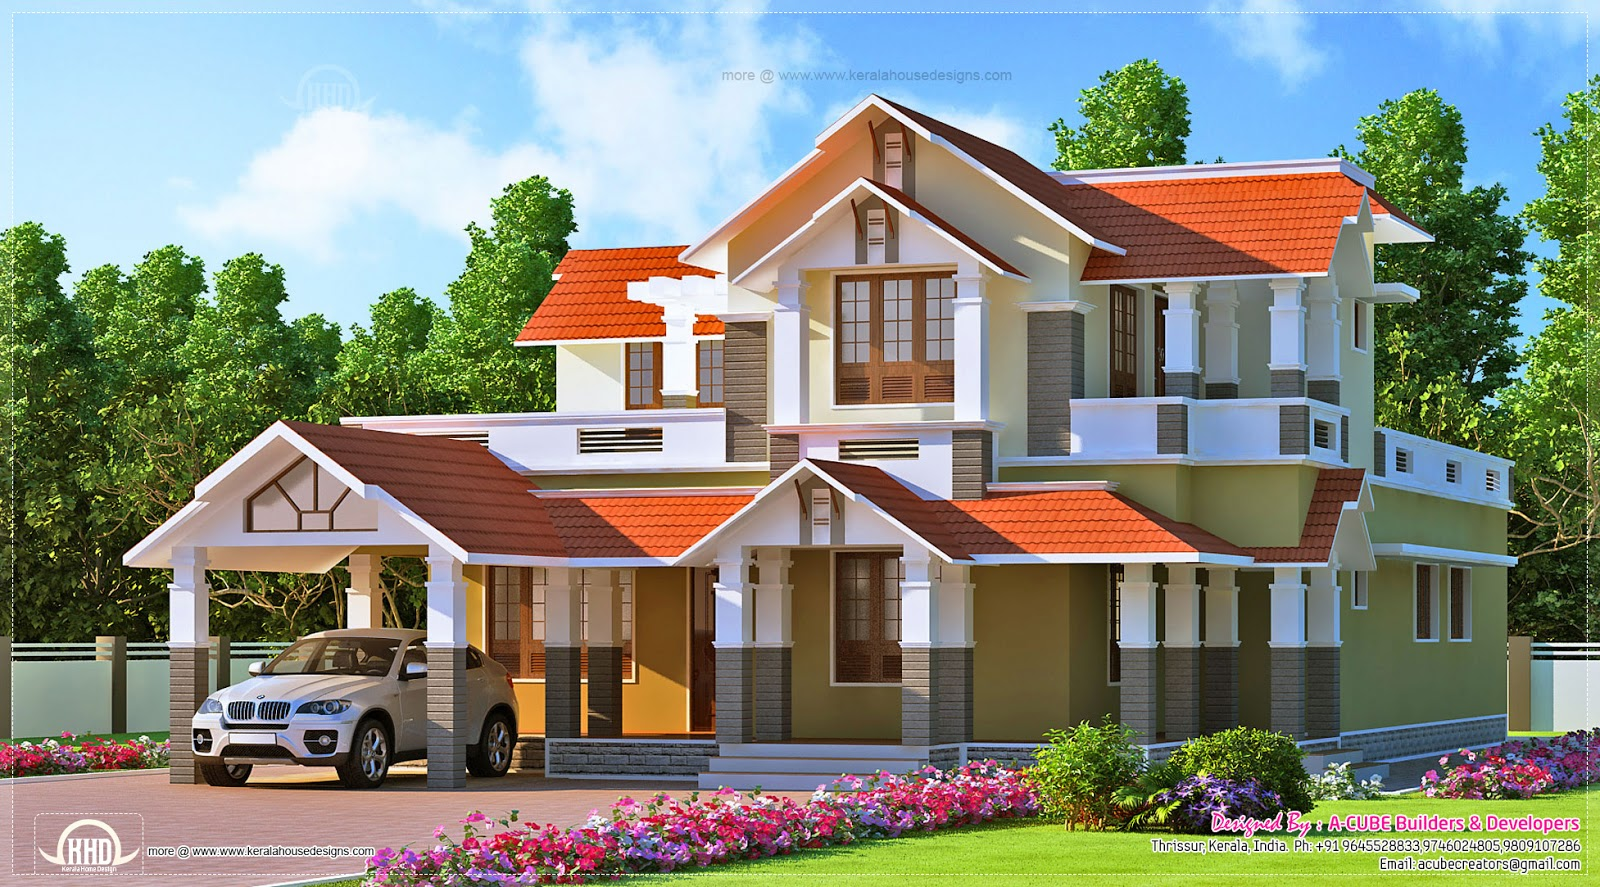 Kerala style dream home design in 2900 house for Dream house plans